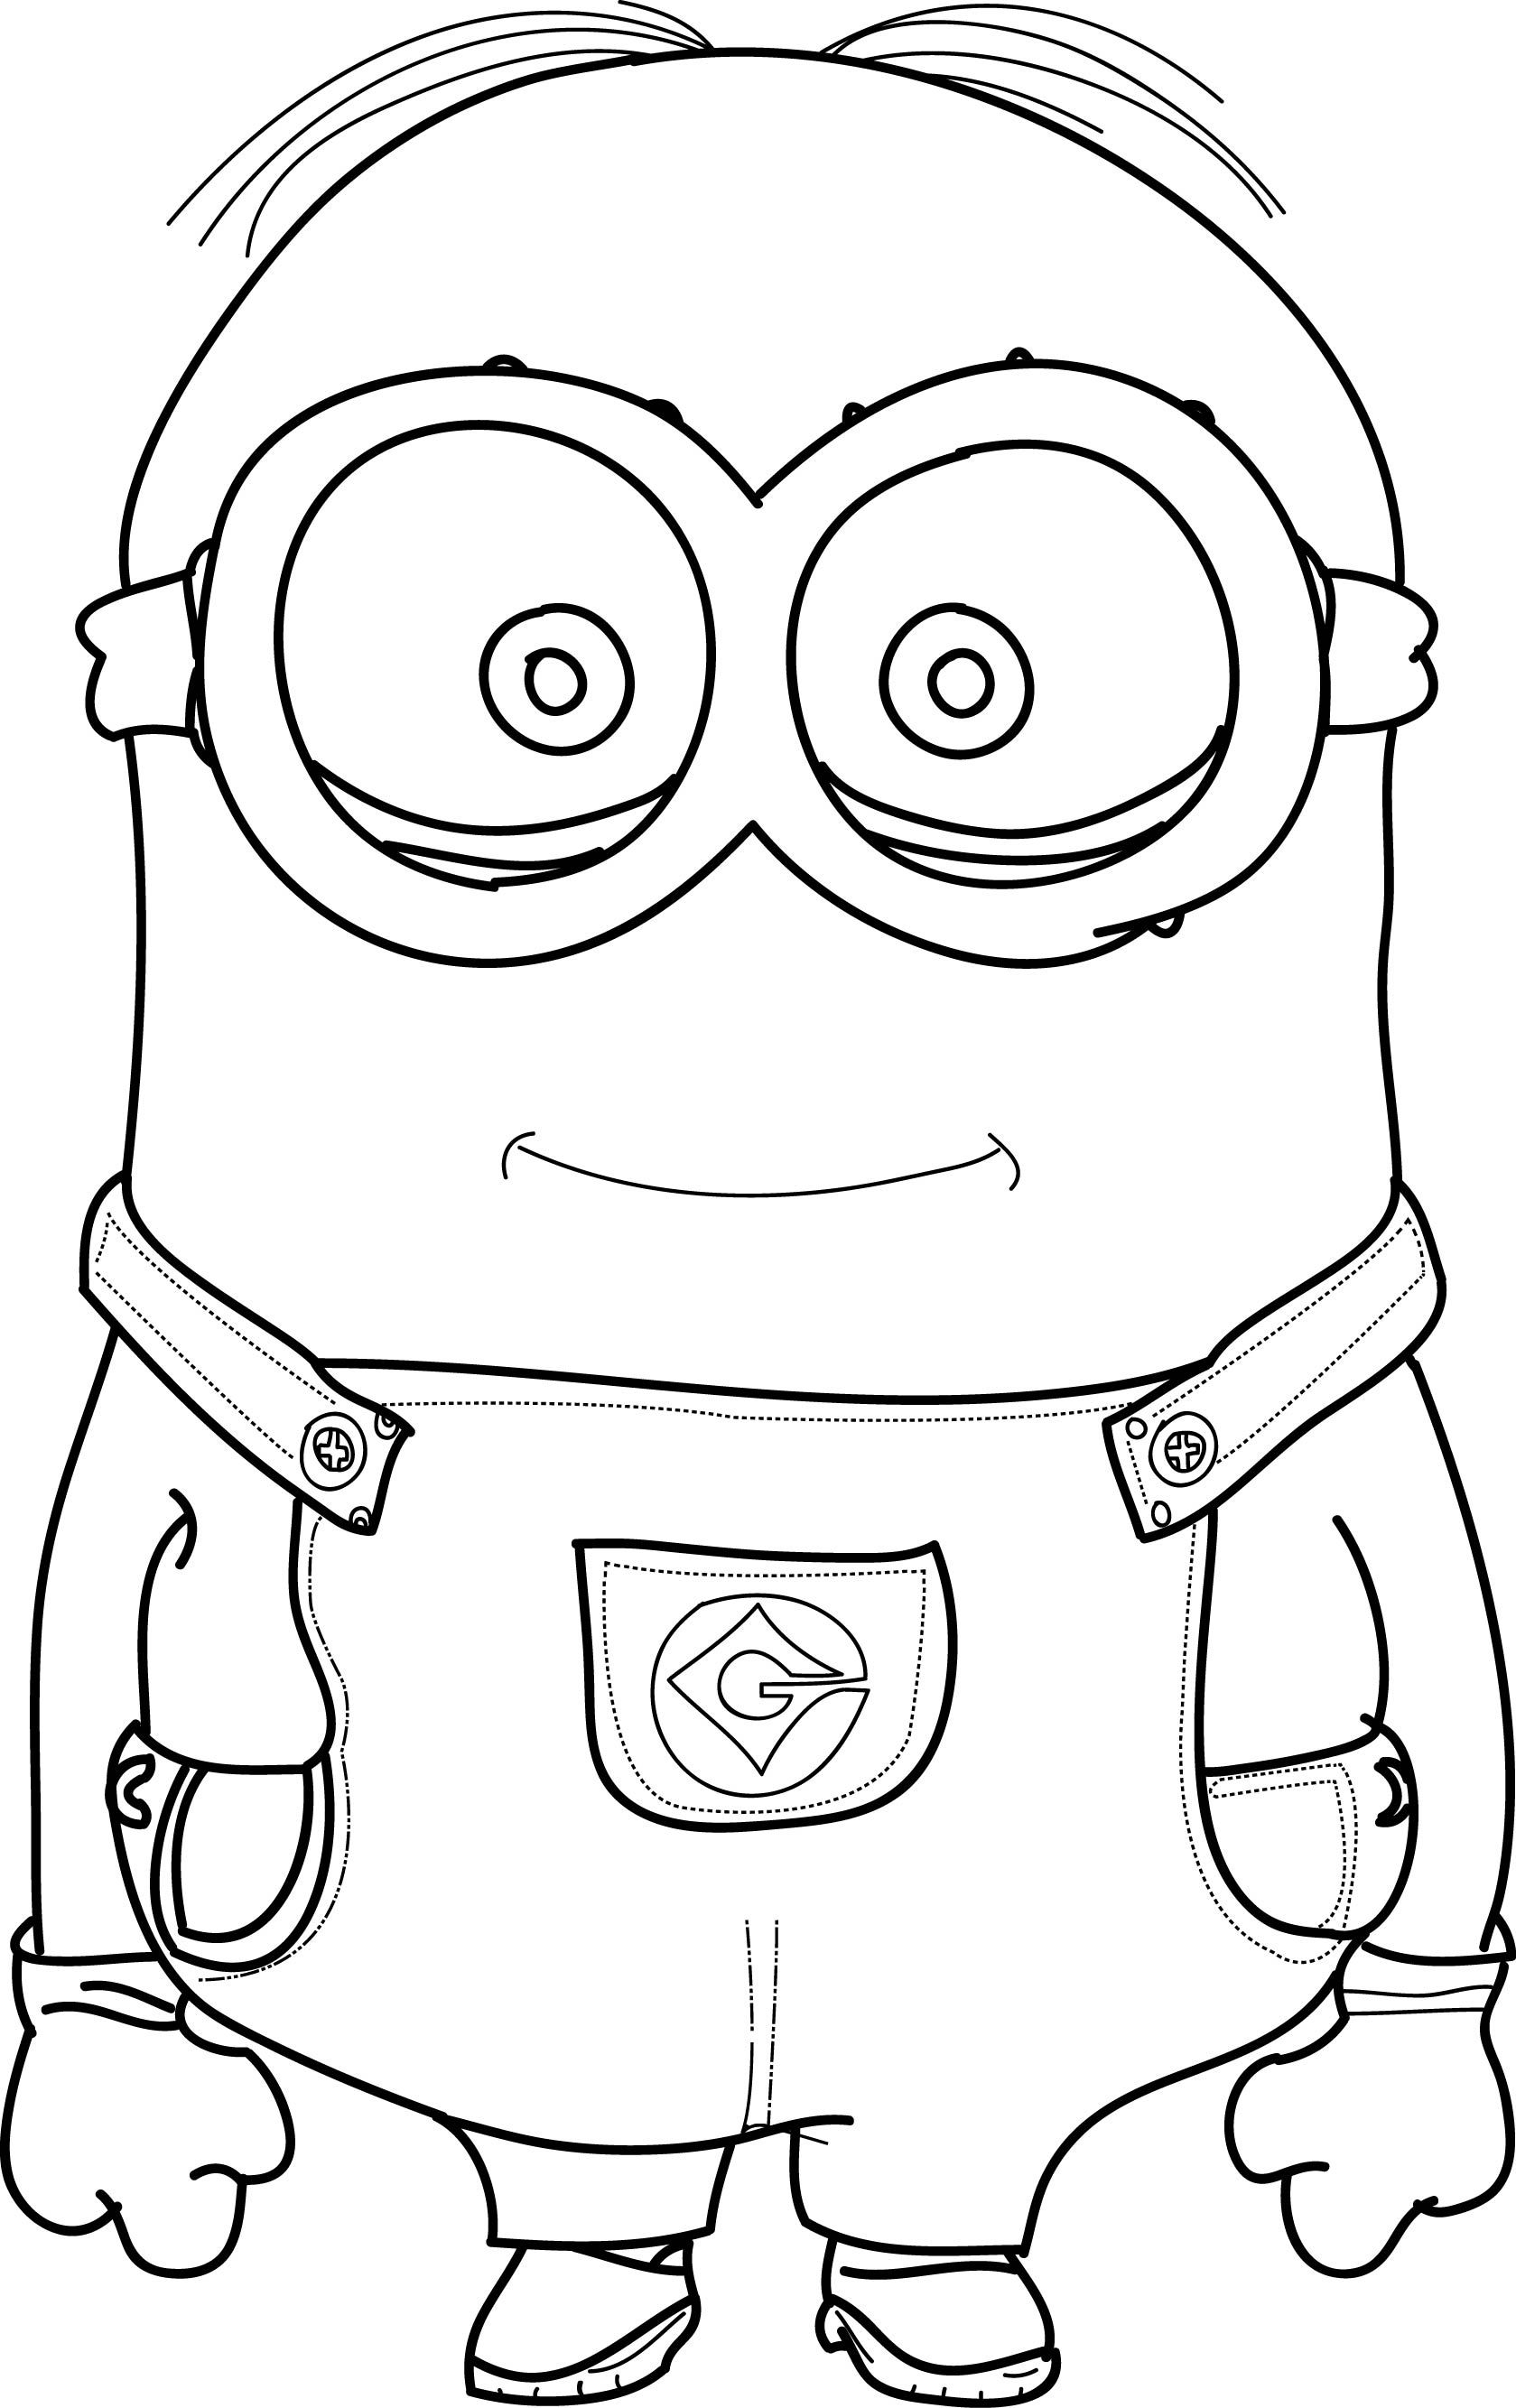 Minions Coloring Pages in 2018 | wecoloringpage | Pinterest | Craft ...